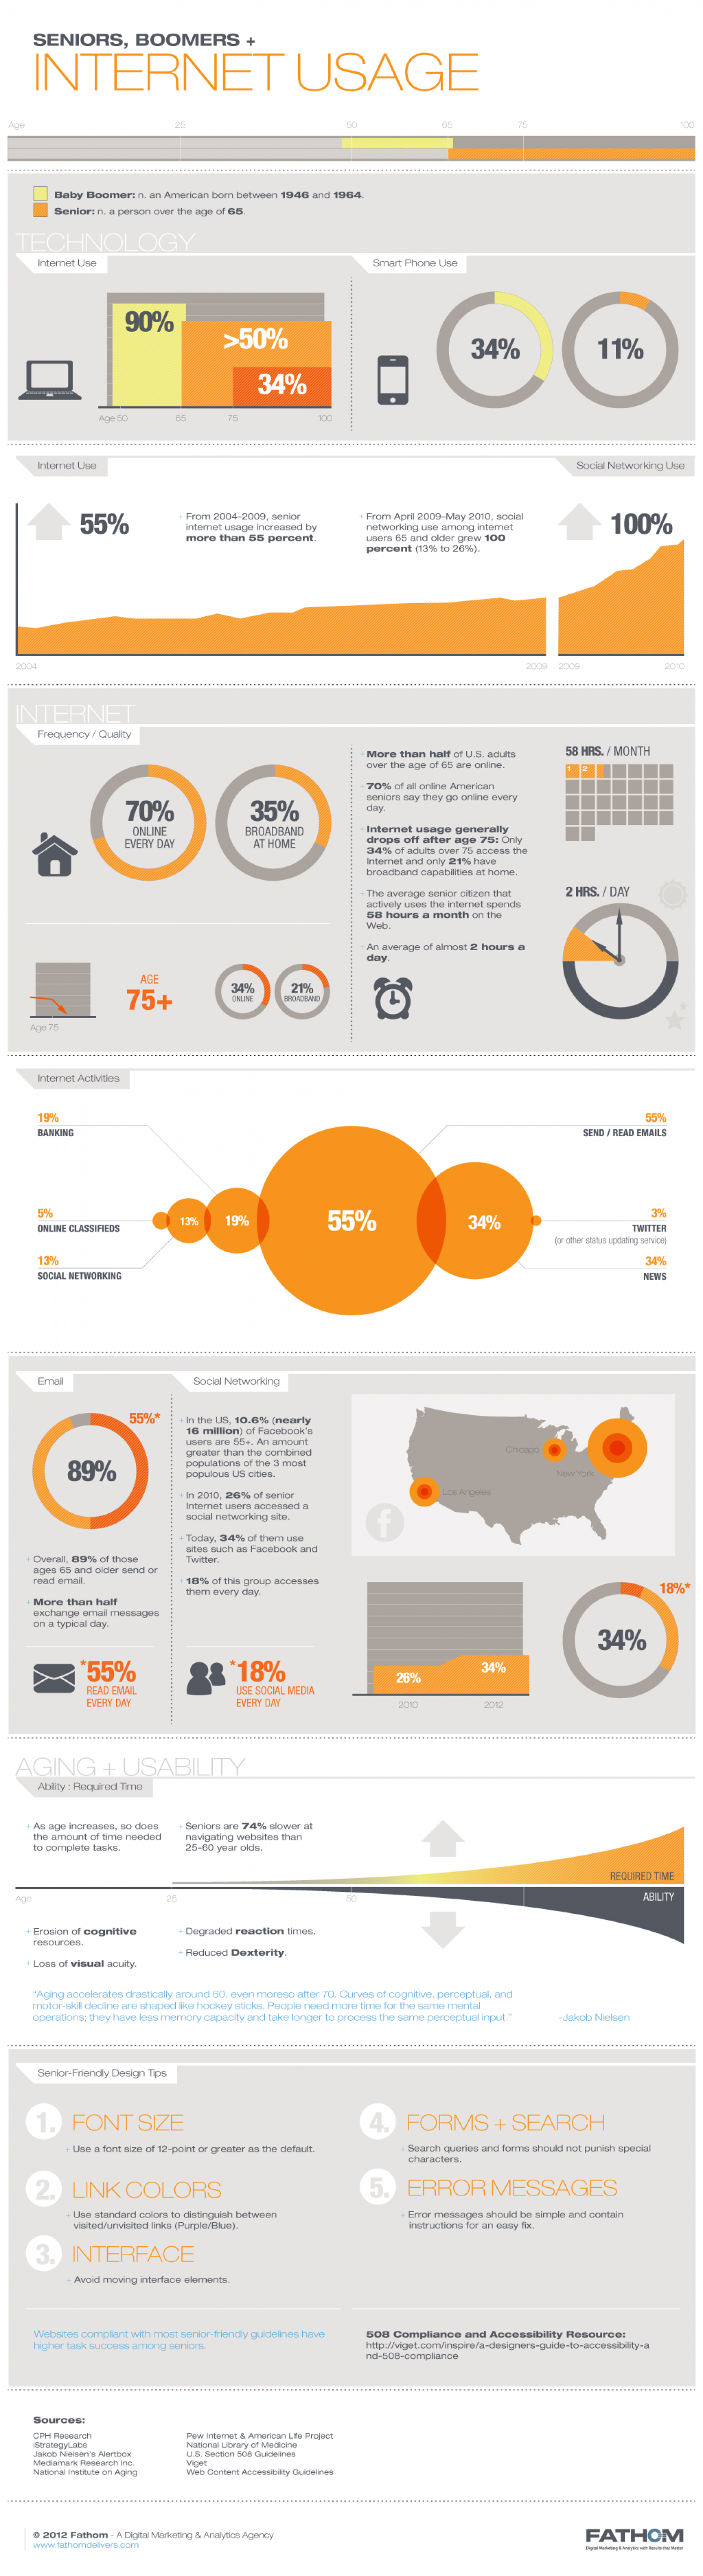 Seniors, Boomers + Internet Usage Infographic